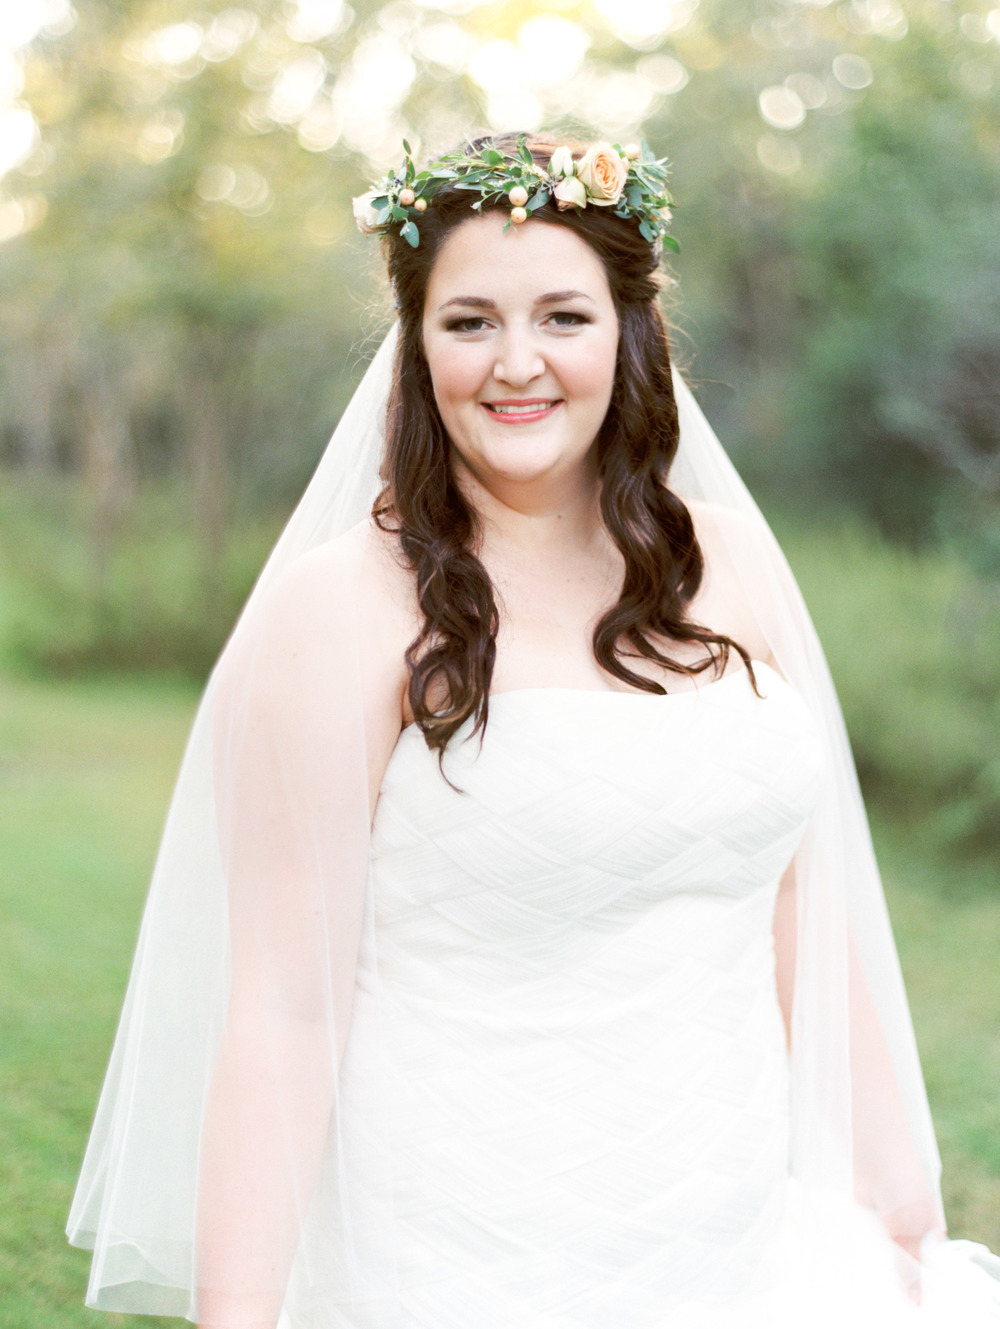 Sarah Best Photography - Elizabeth's Bridals - 7F Lodge-121.jpg